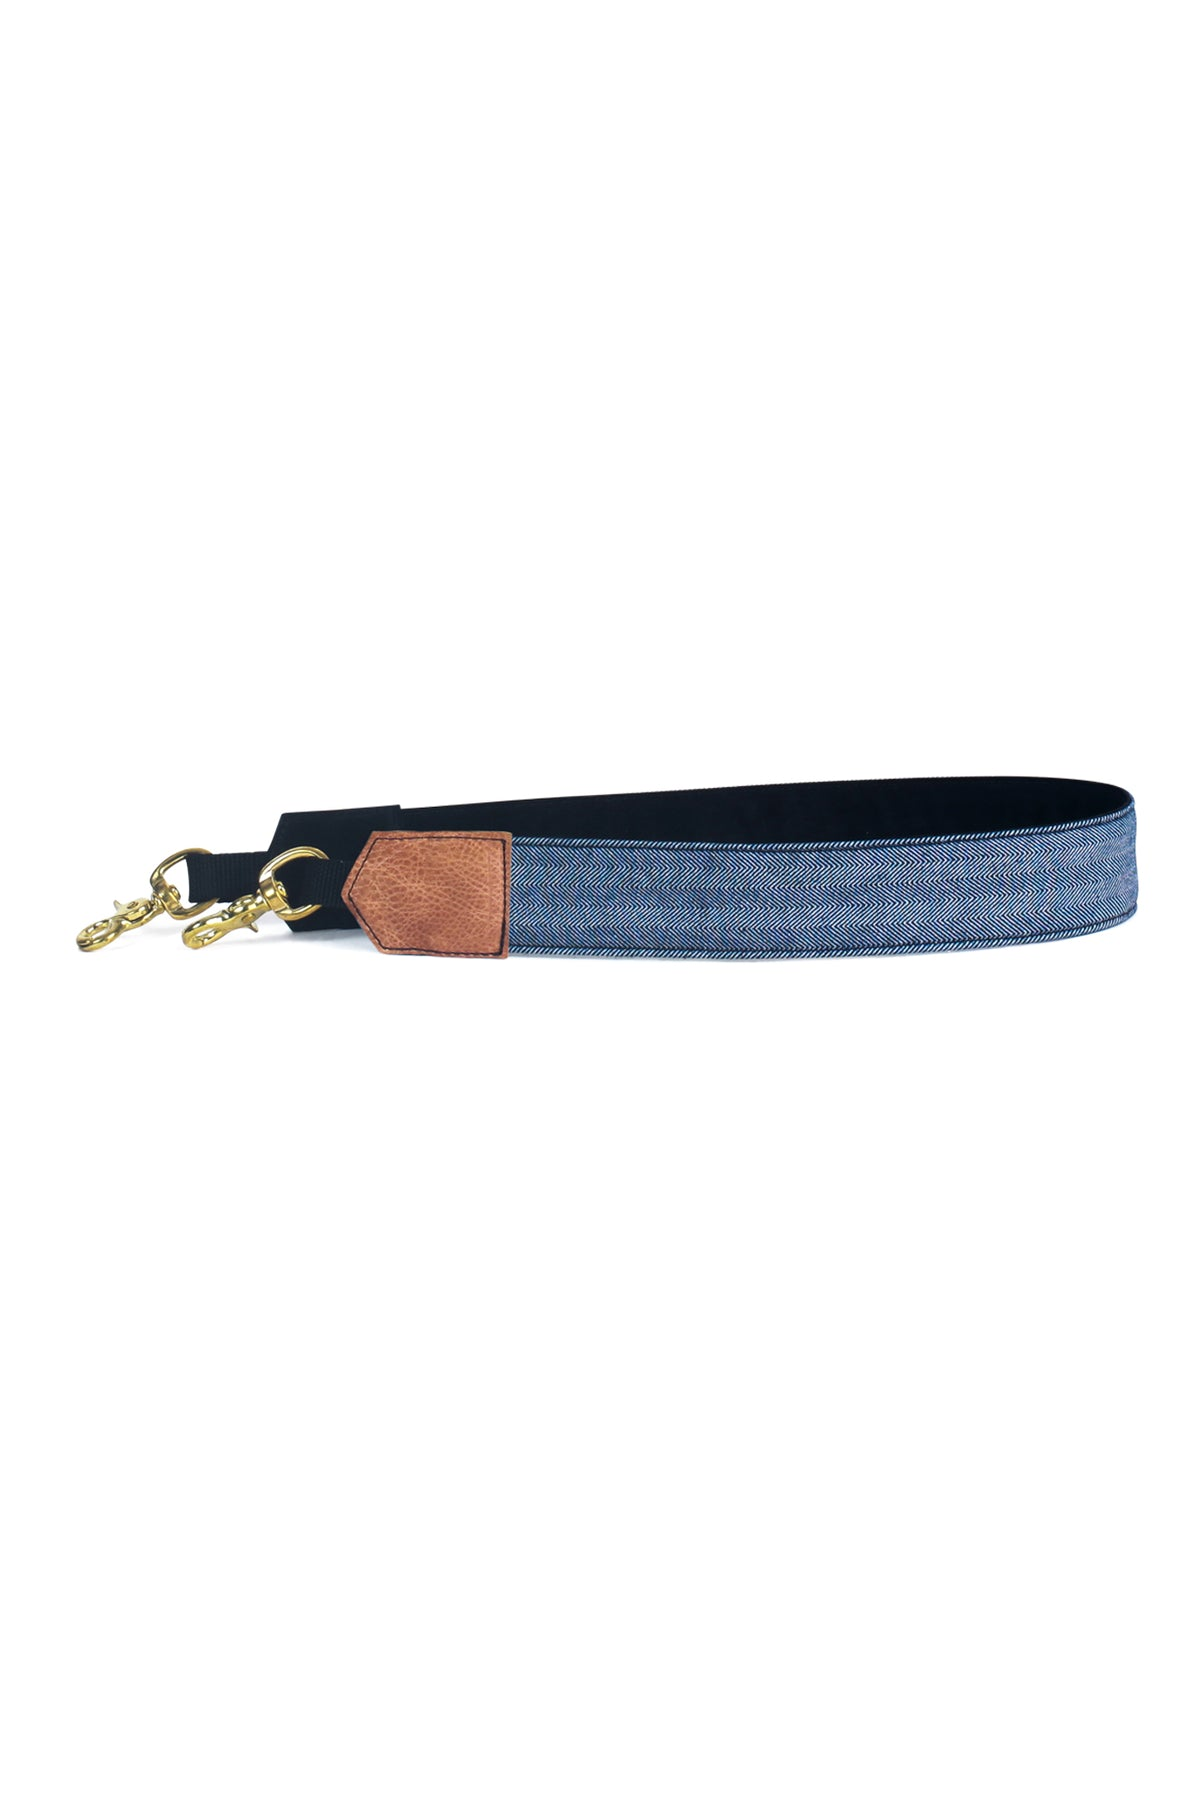 The Rais Case Strap - Danielle - image 1